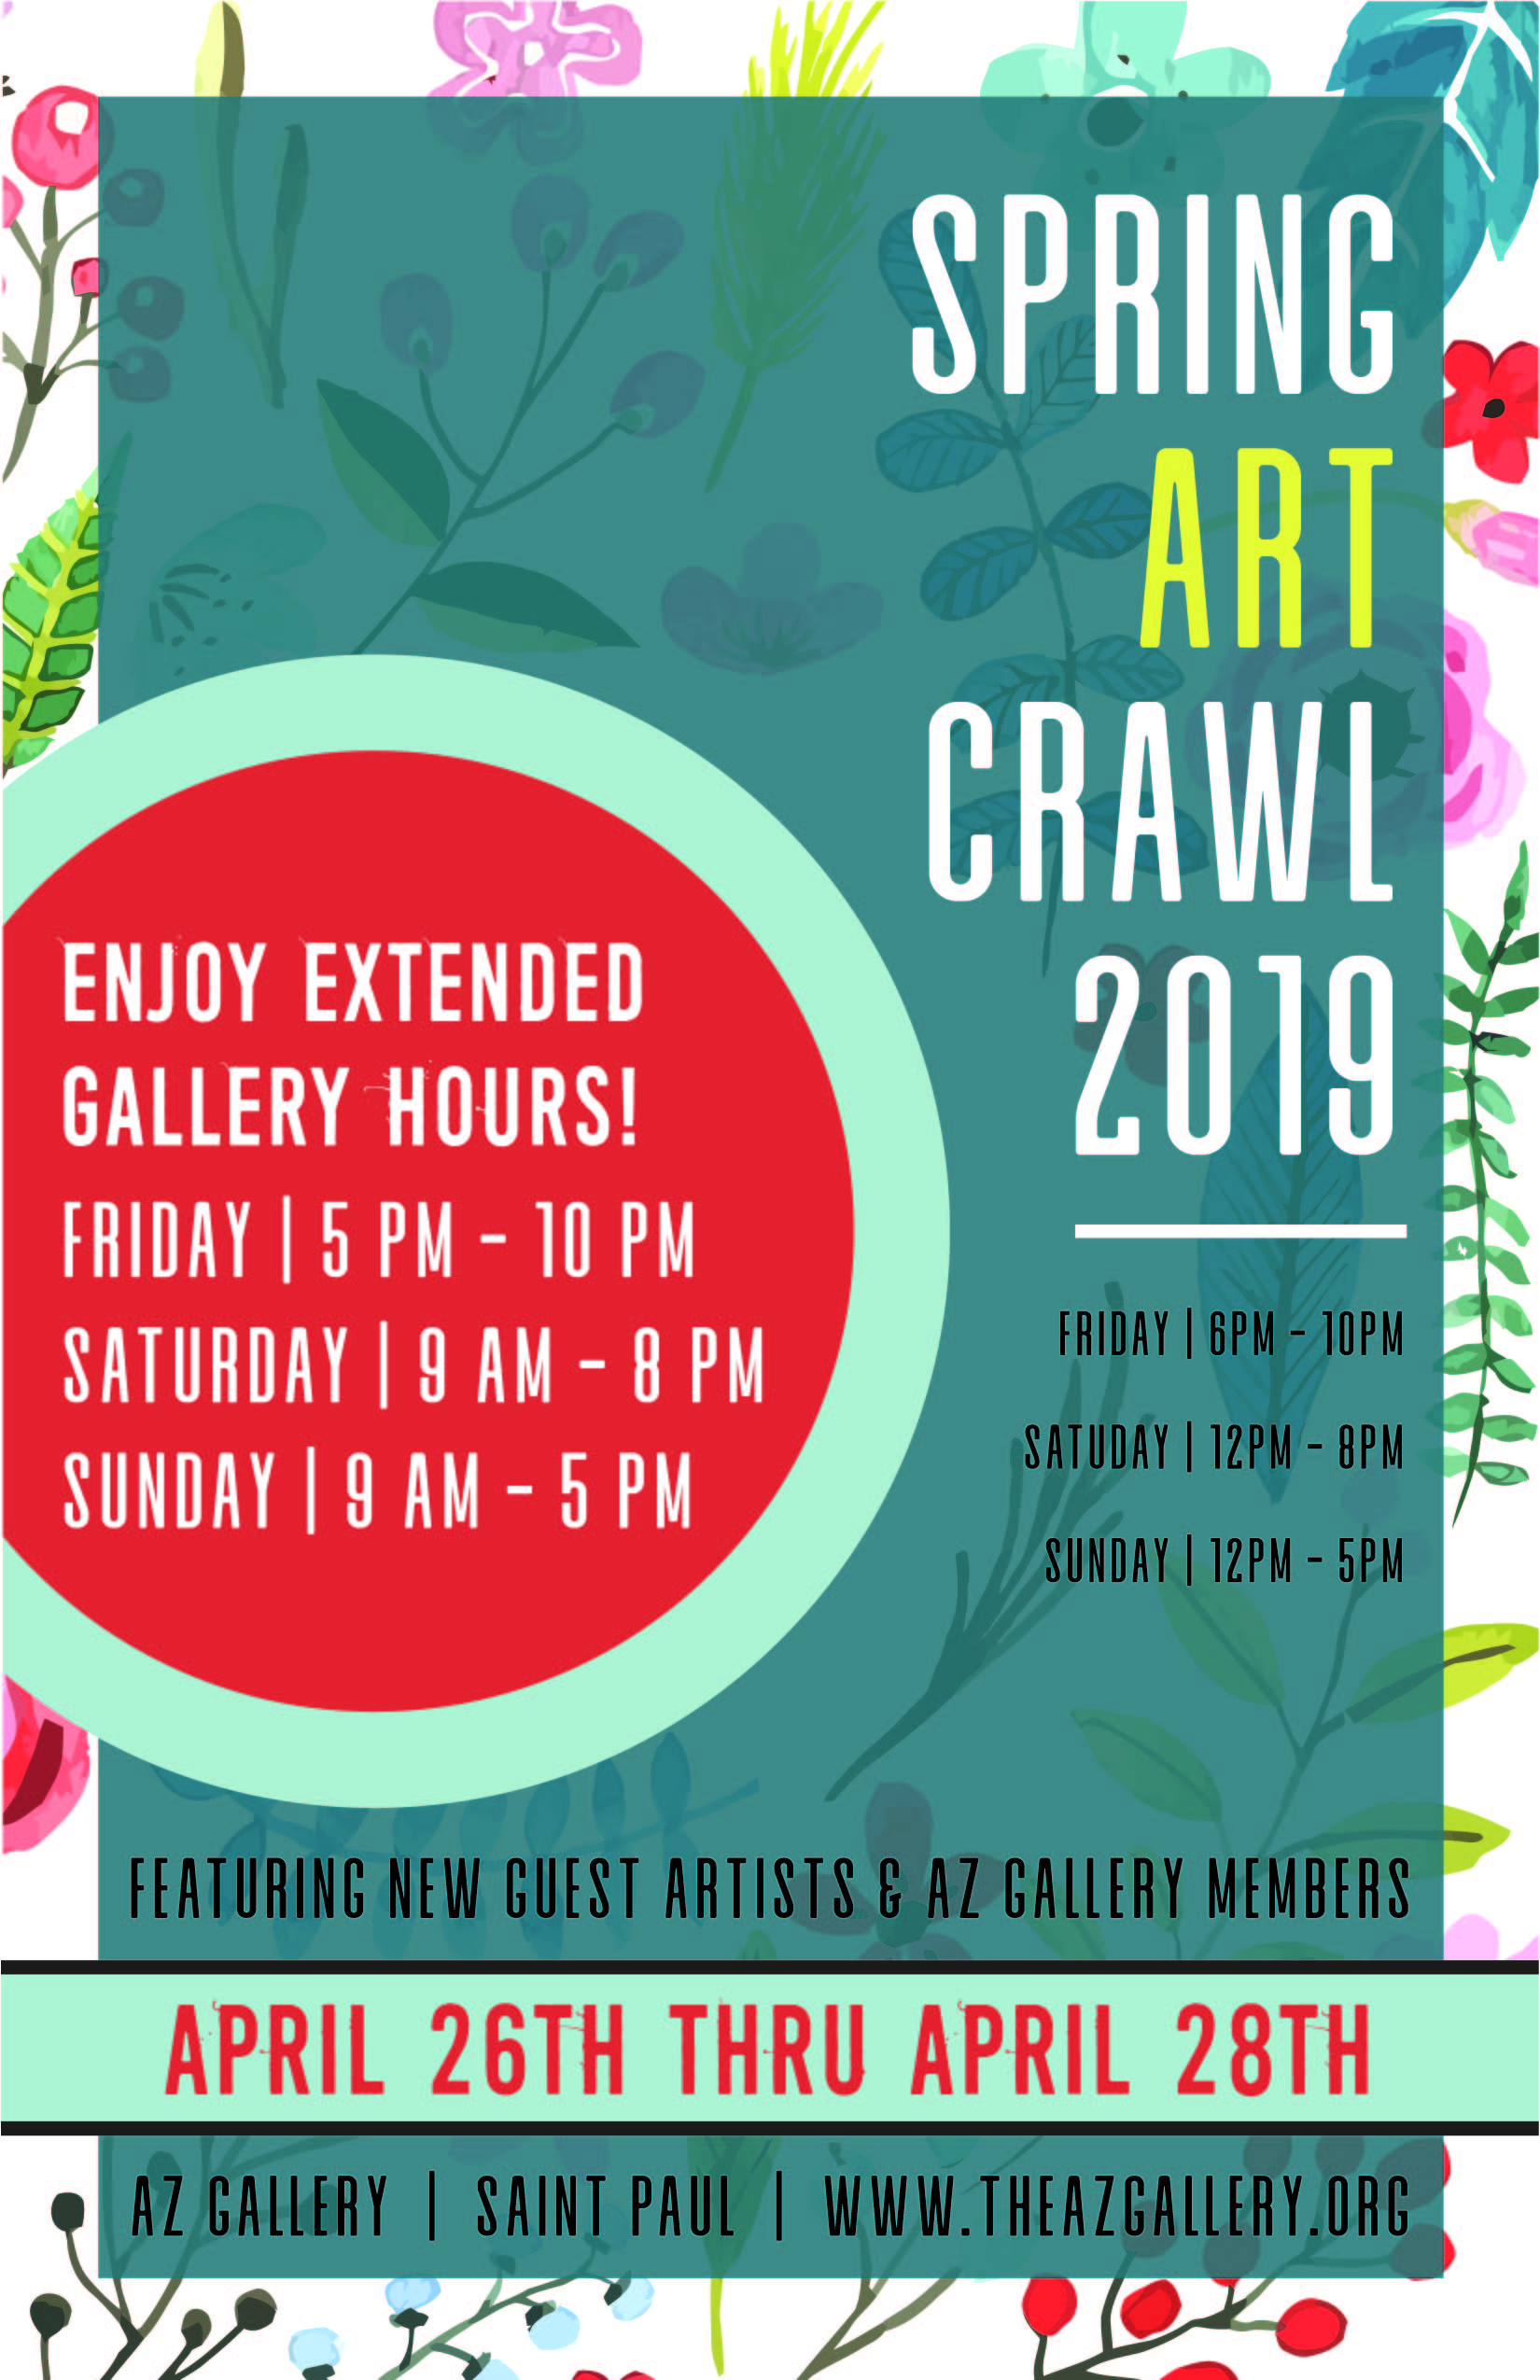 SAINT PAUL ART CRAWL - POSTER DESIGN | DRAFT CONTENTAZ Gallery participates in both the Spring & Fall Art Crawl featuring local guest artists as well as its members.